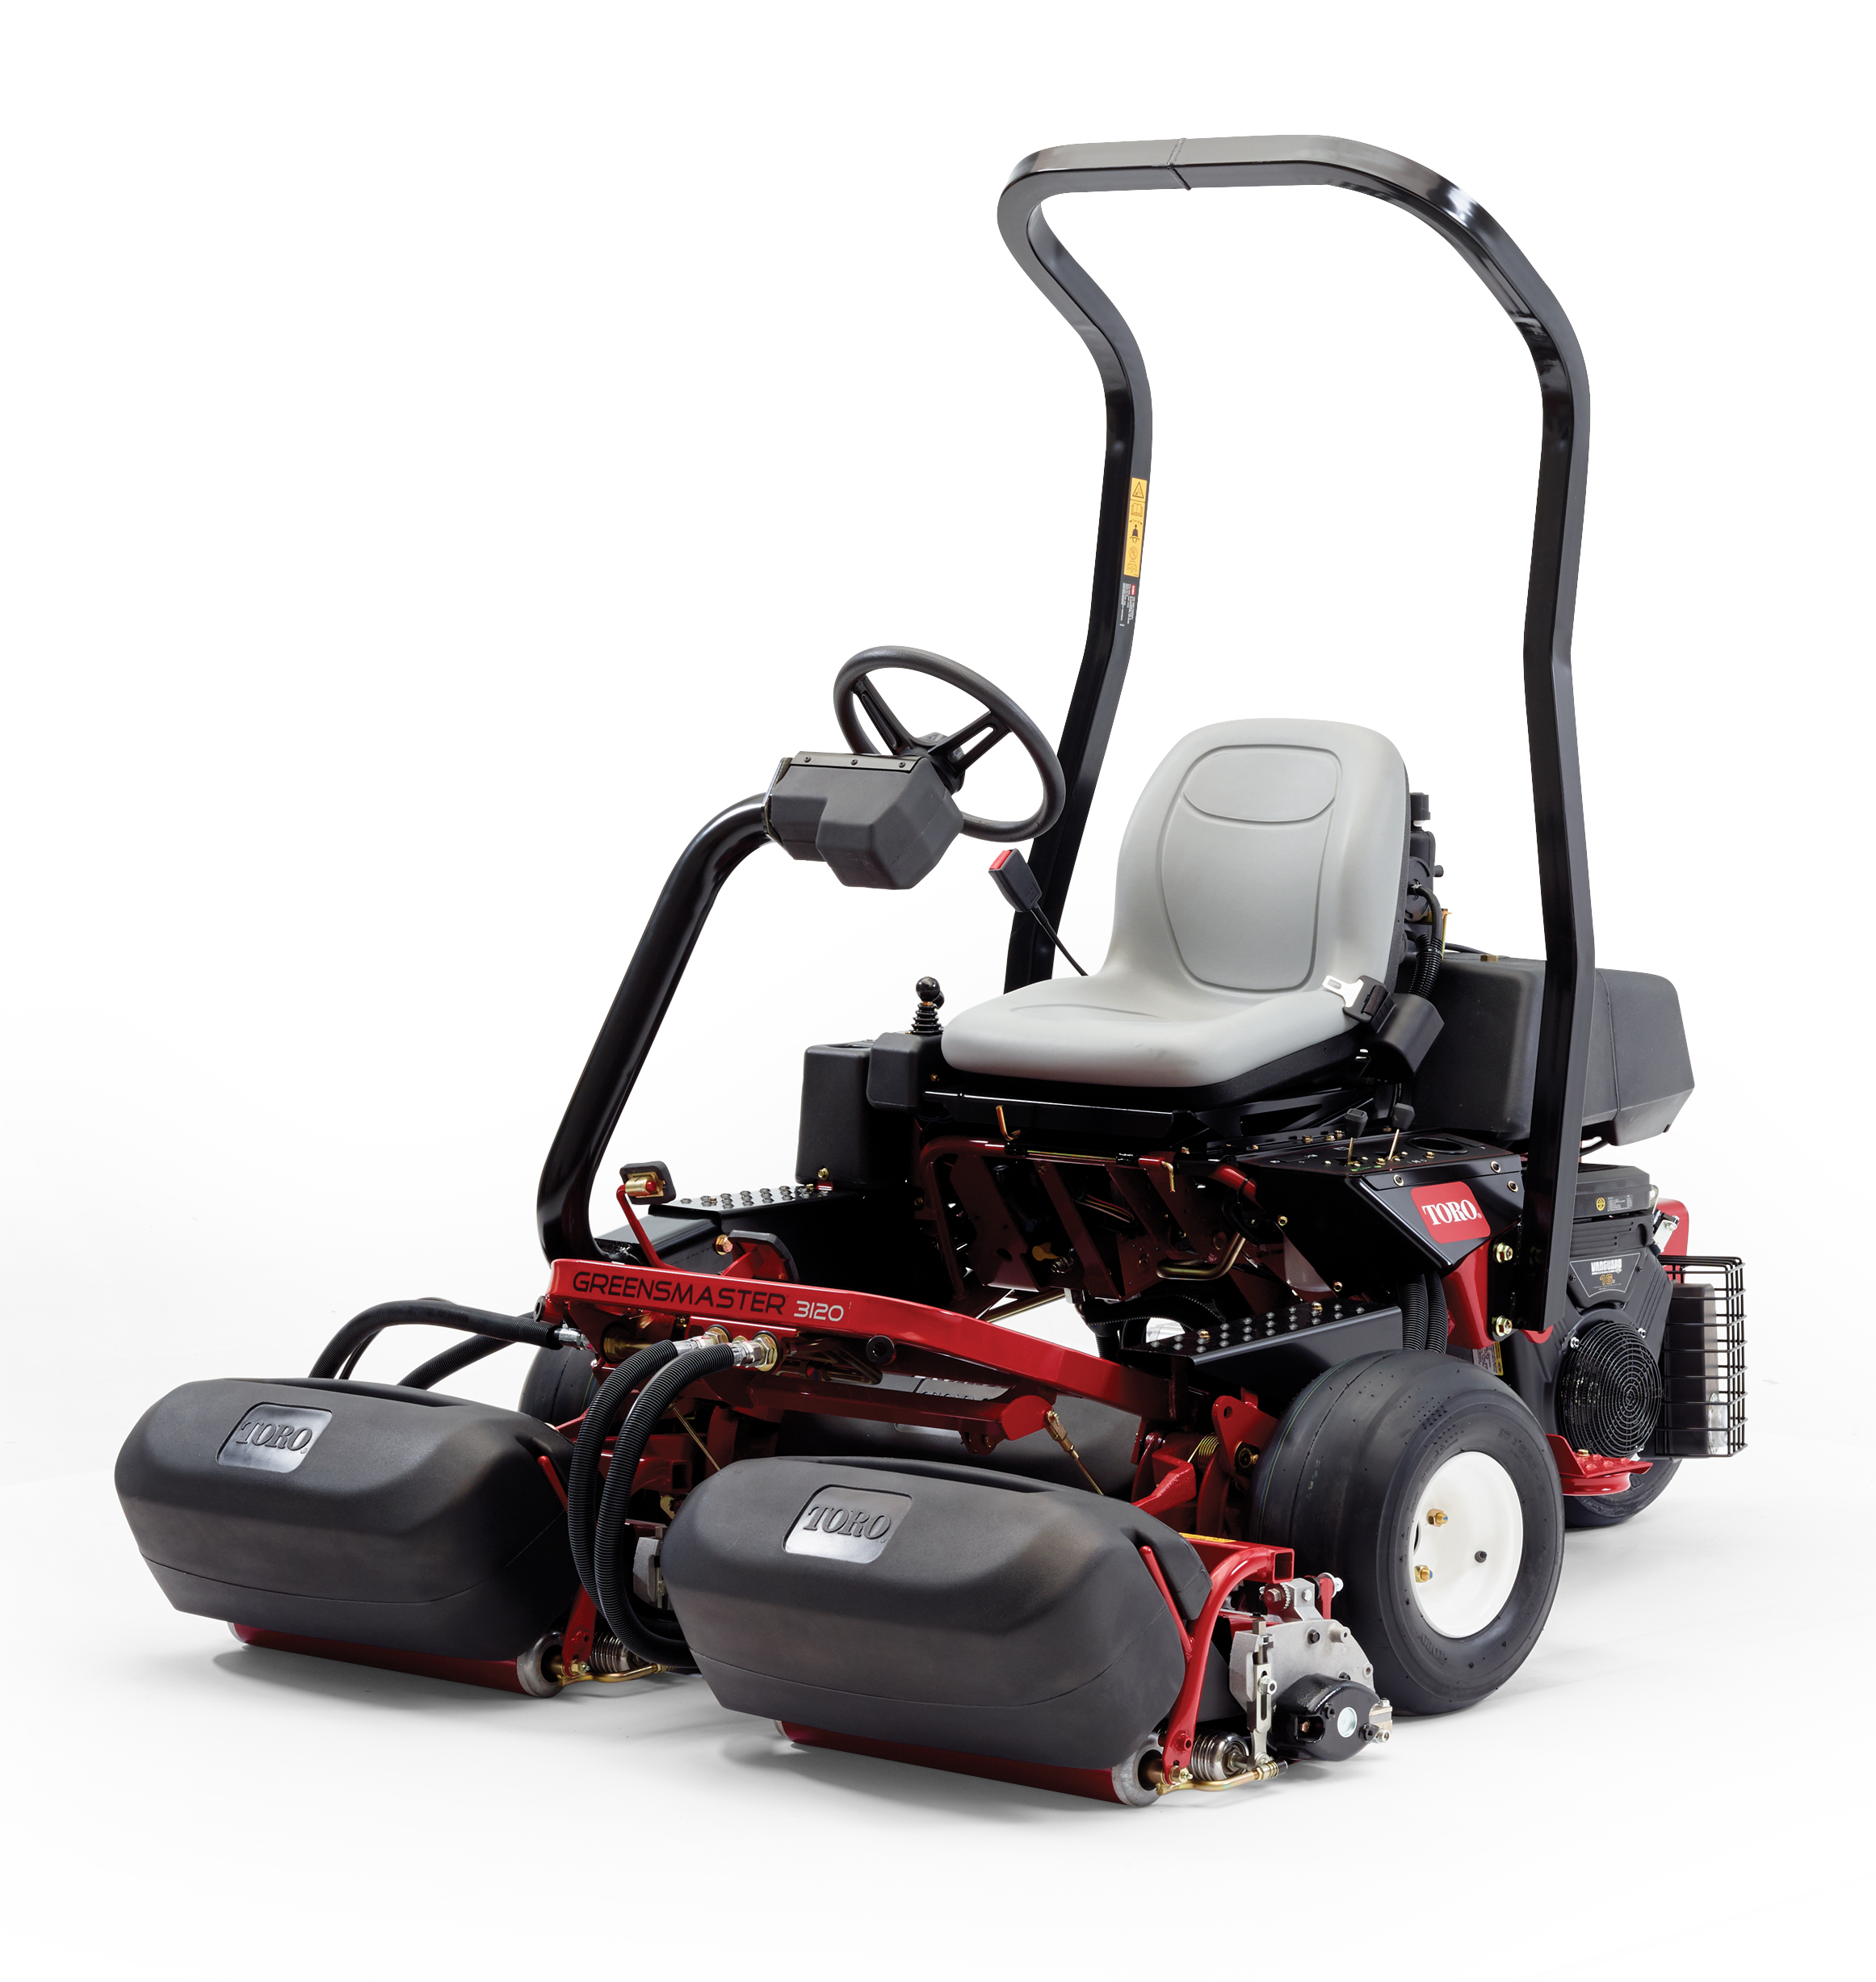 New Toro Greensmaster® 3120 Ride-on Mower is highly productive at an attractive price